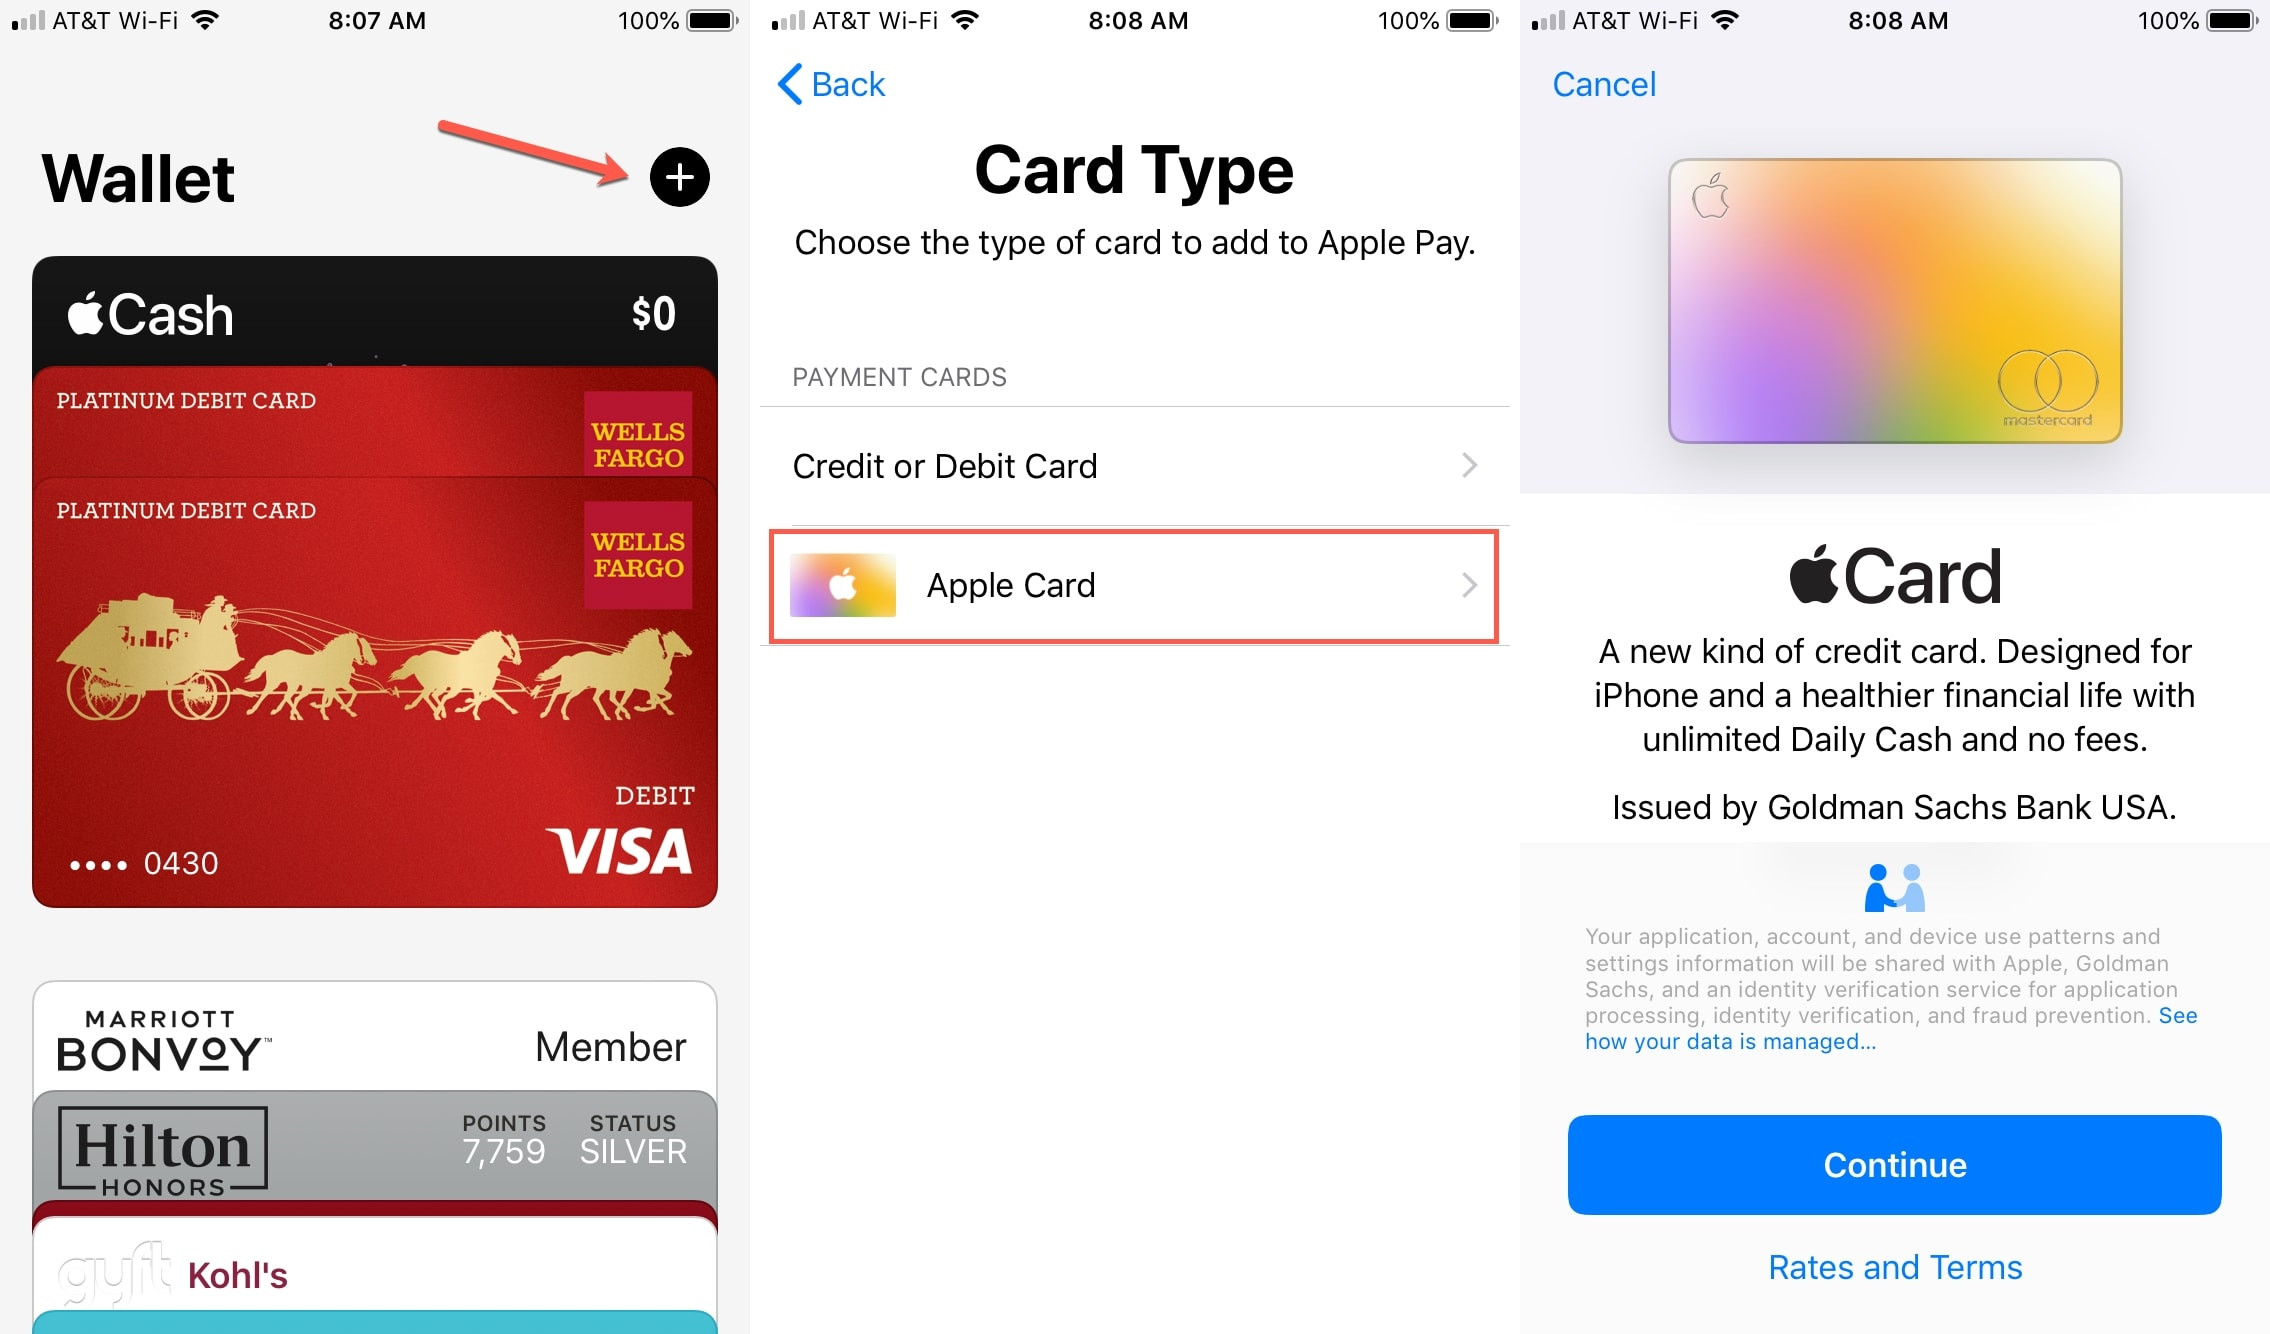 Applicable to Apple Wallet